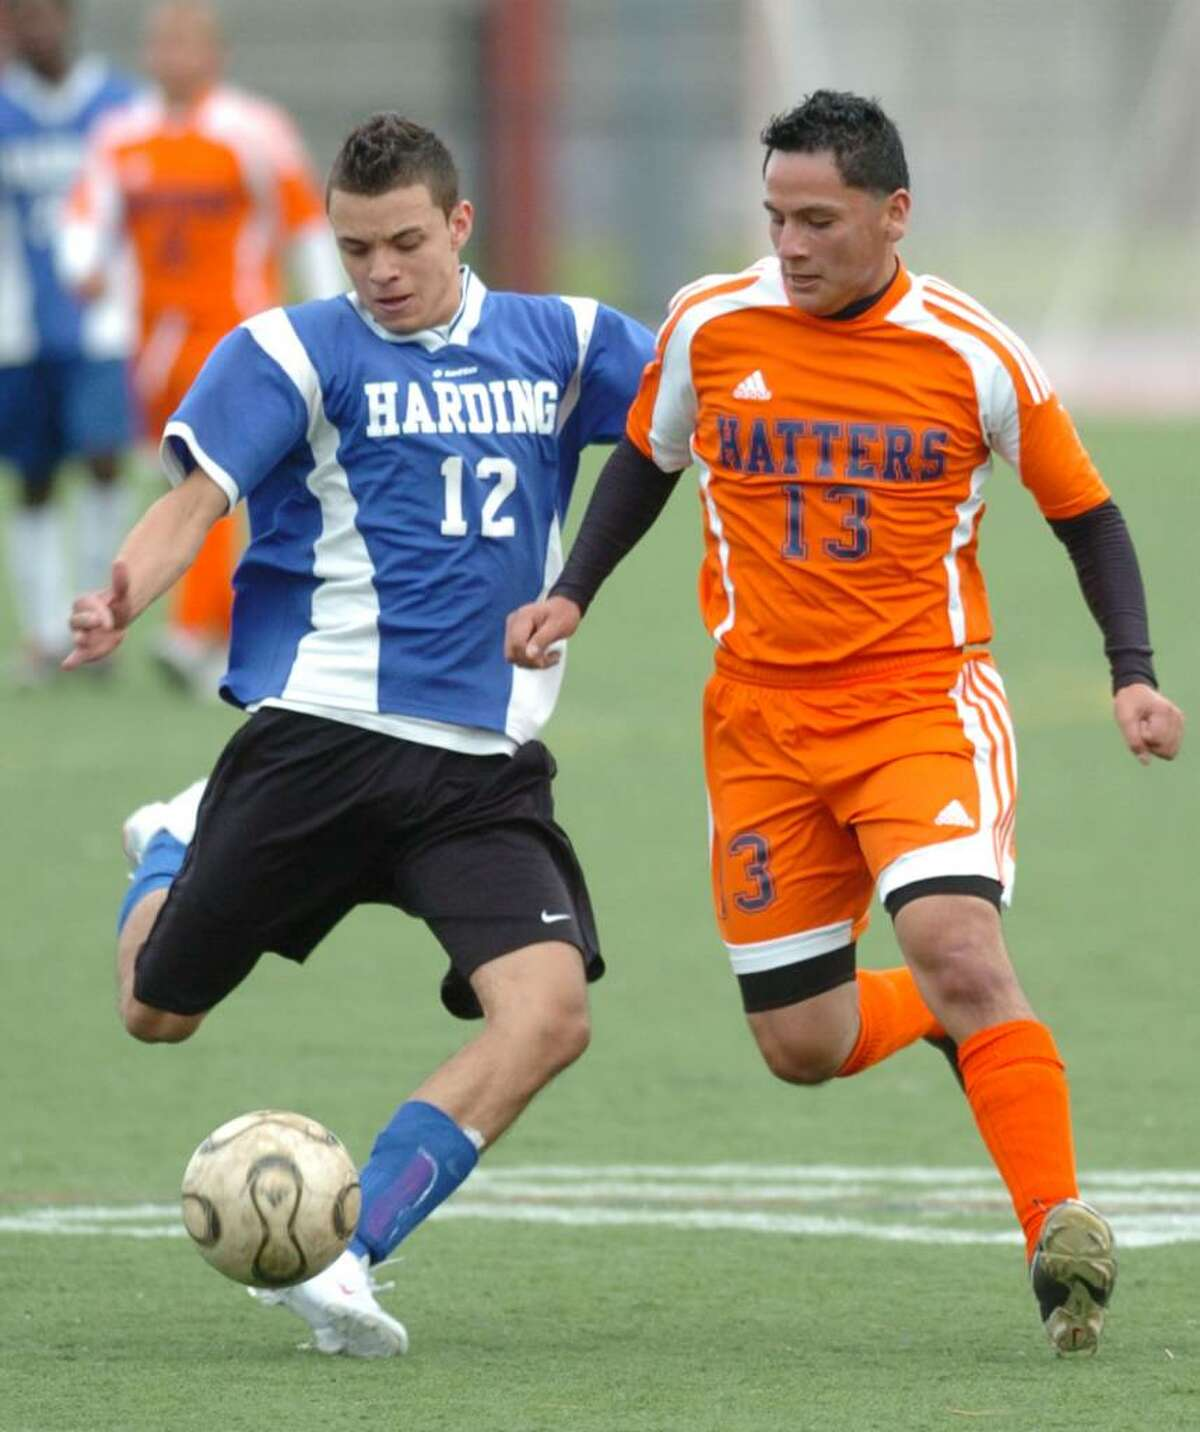 Danbury's 13, Andres Vera and Harding's 12, George Perez, play soccer against Harding at Danbury High Wednesday, Oct. 14, 2009.